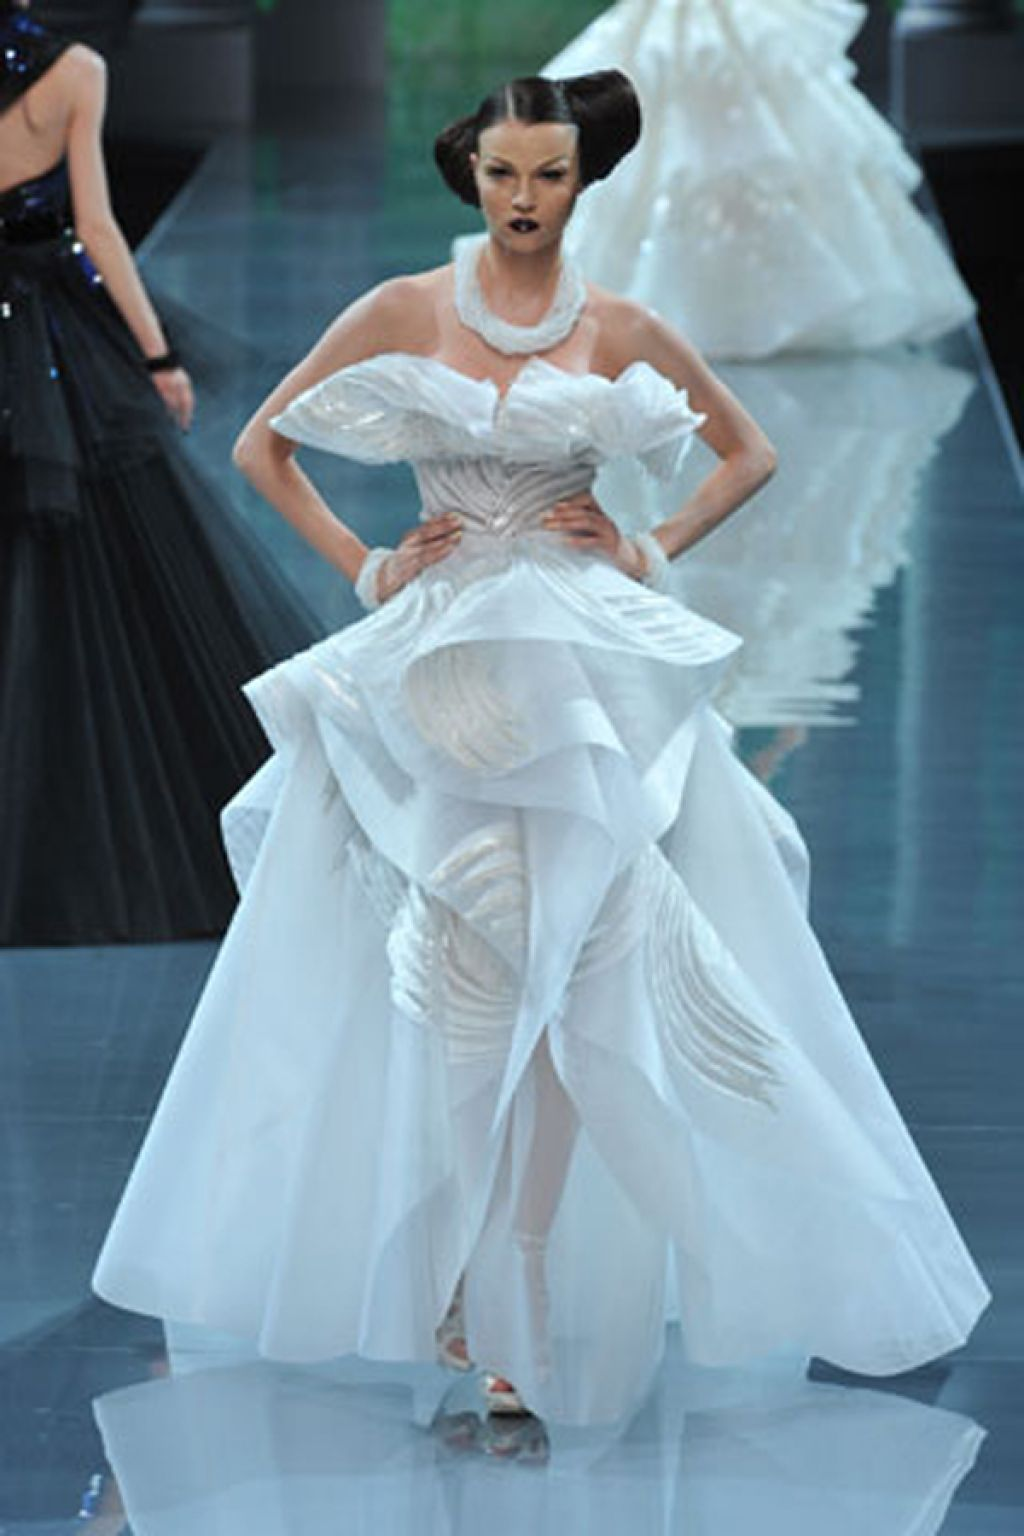 Christian Dior Wedding Dress 04 | BRIDE 1 | Pinterest | Dior ...